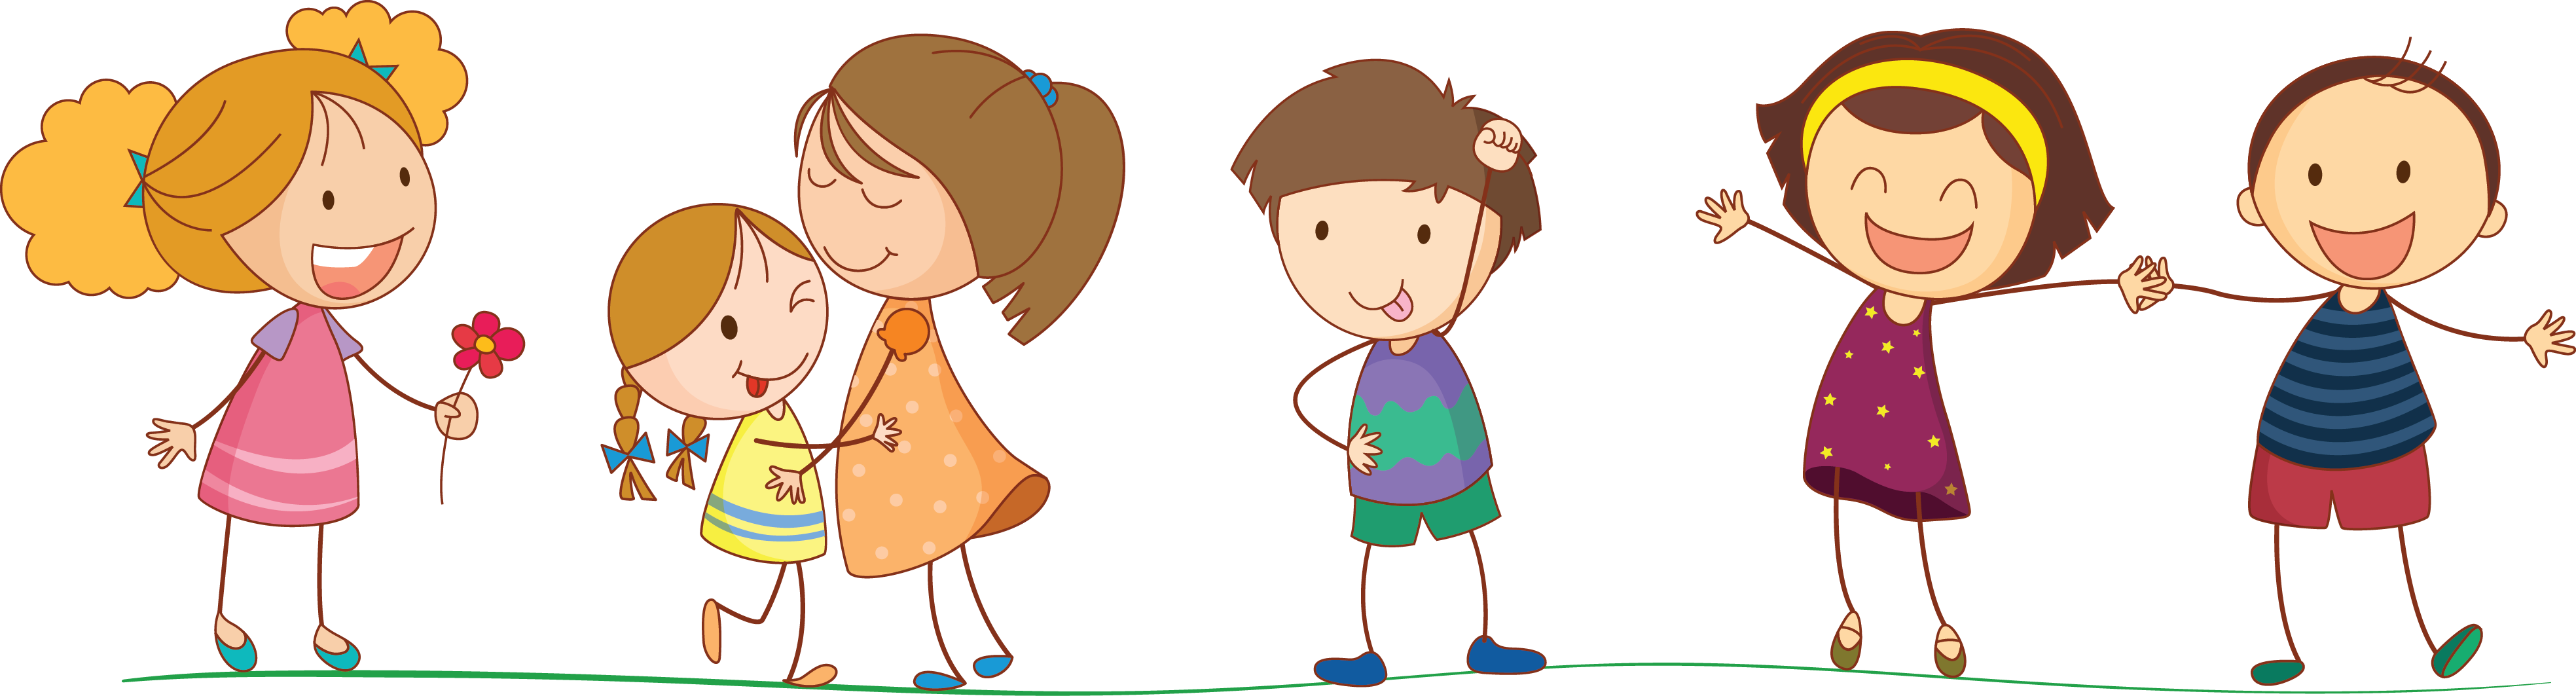 Kids Transparent PNG Pictures - Free Icons and PNG Backgrounds